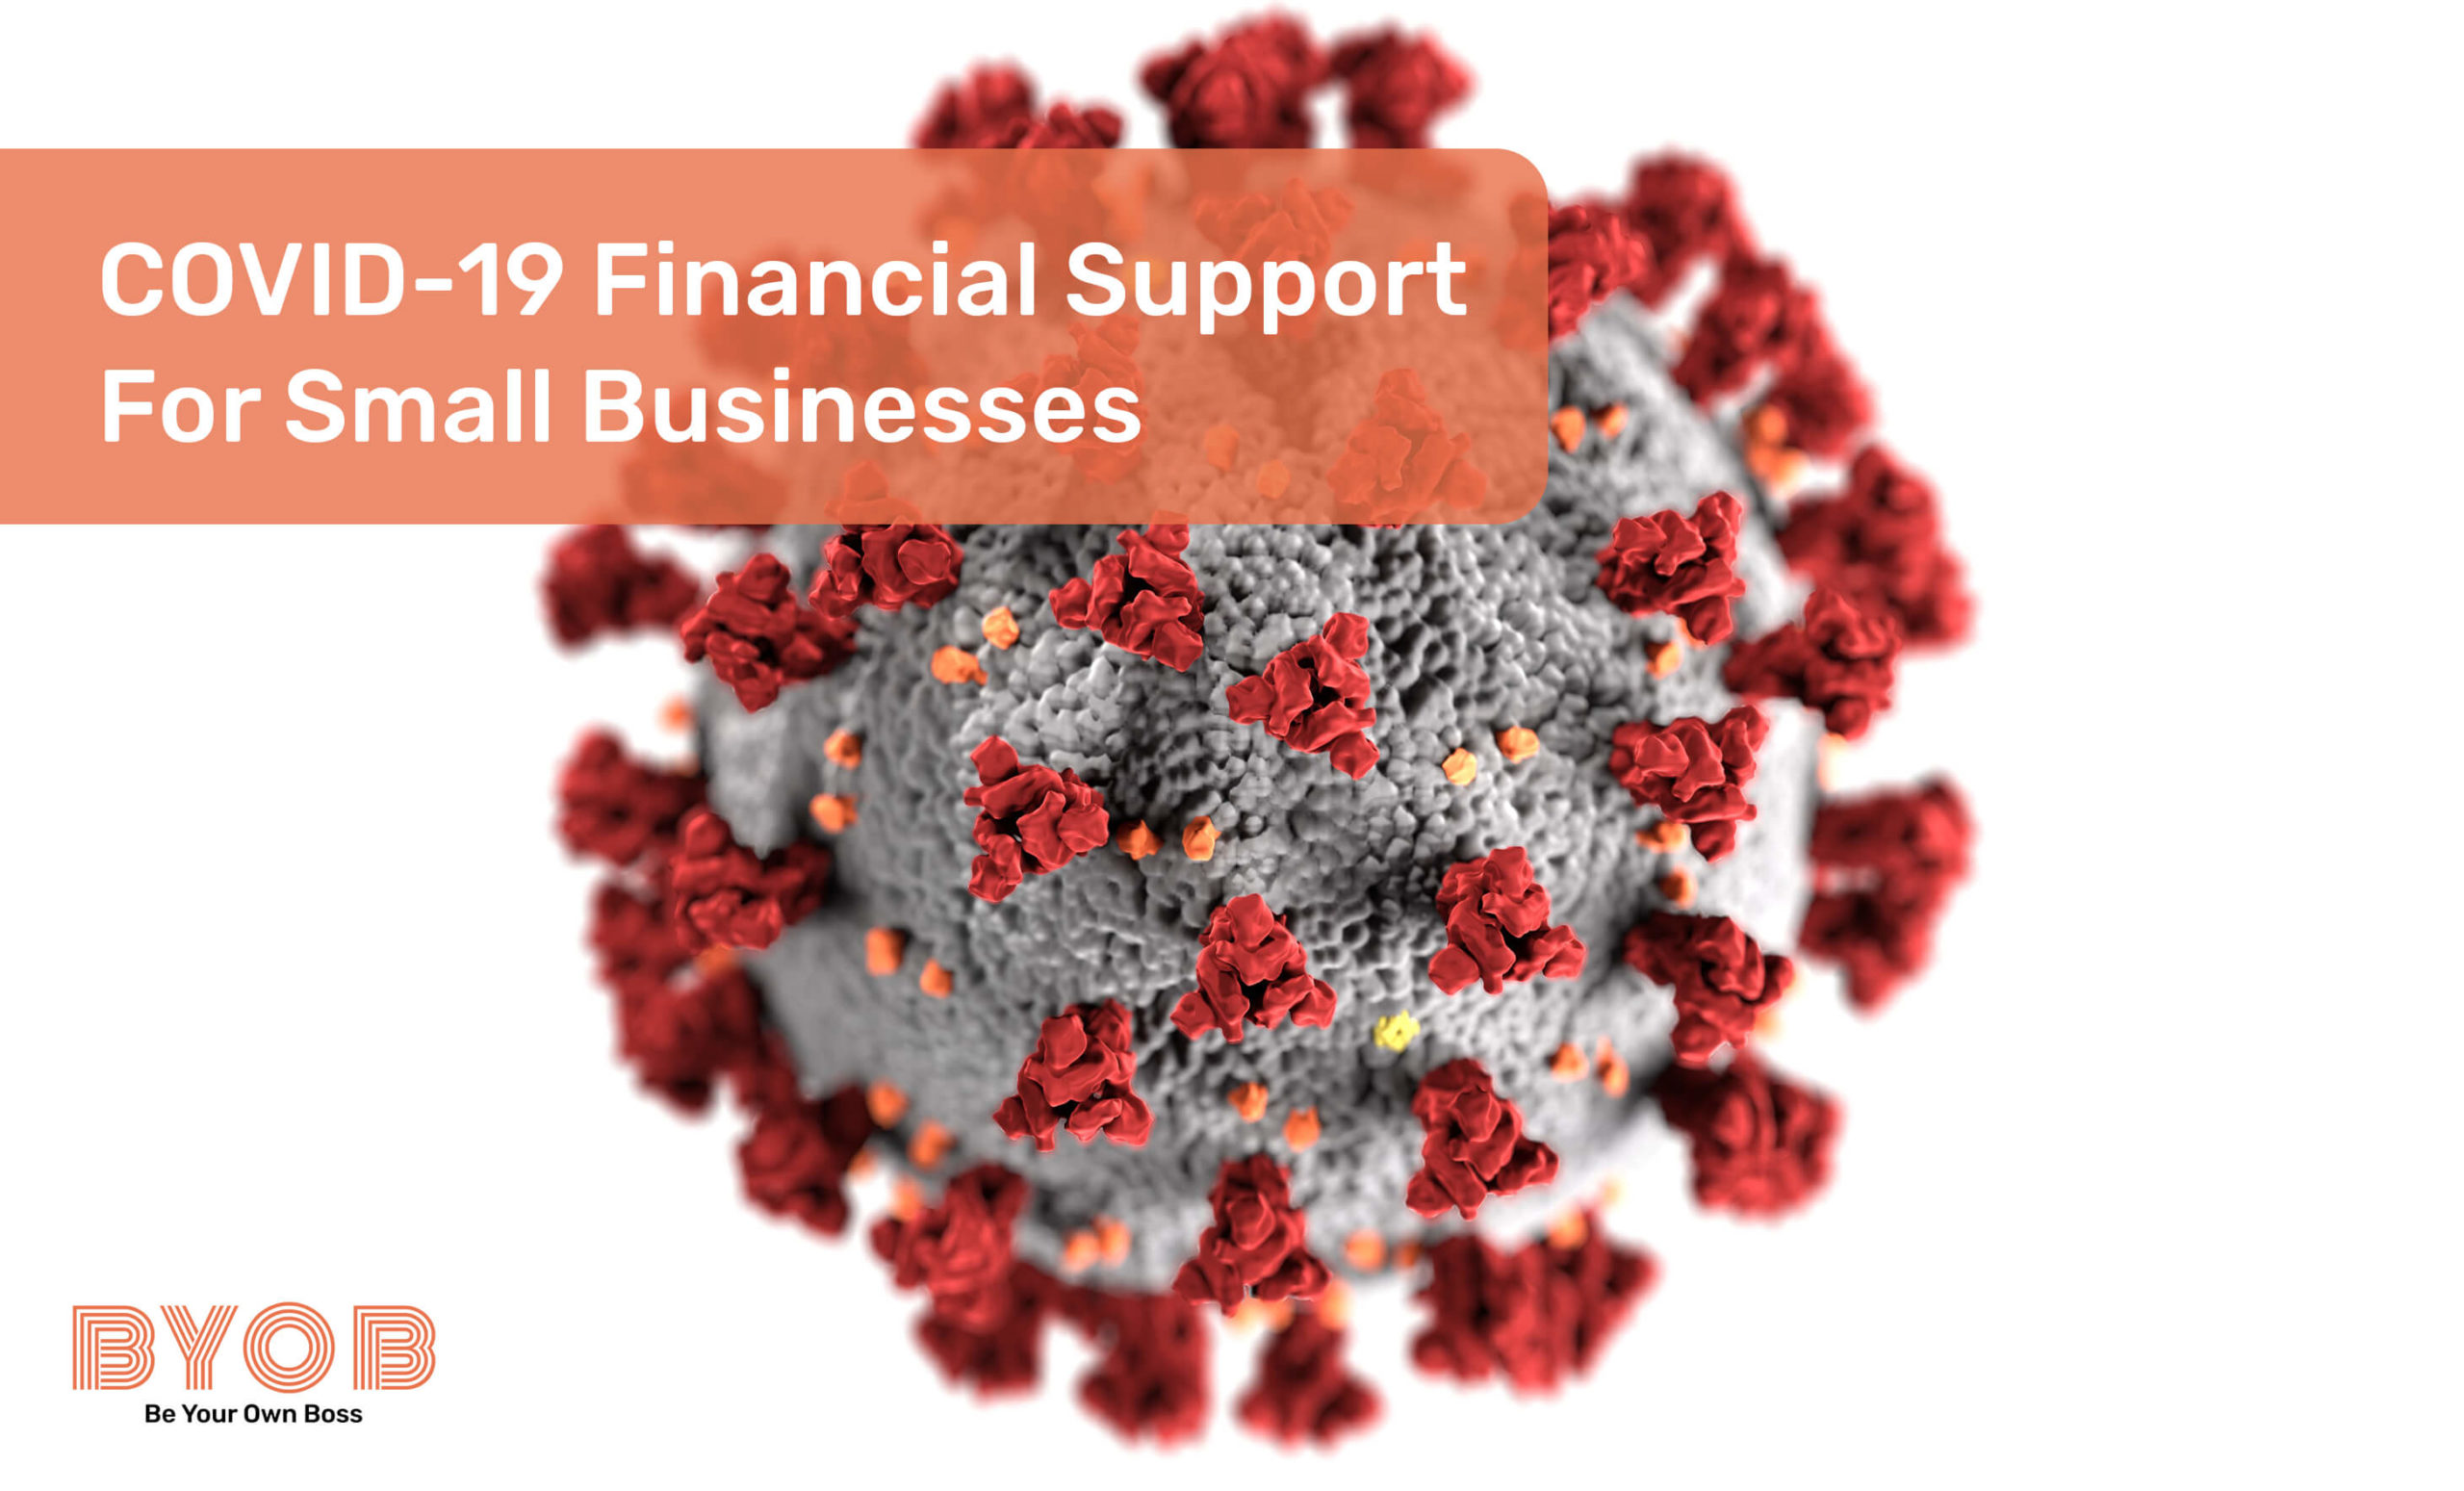 Financial support options for small businesses during COVID-19